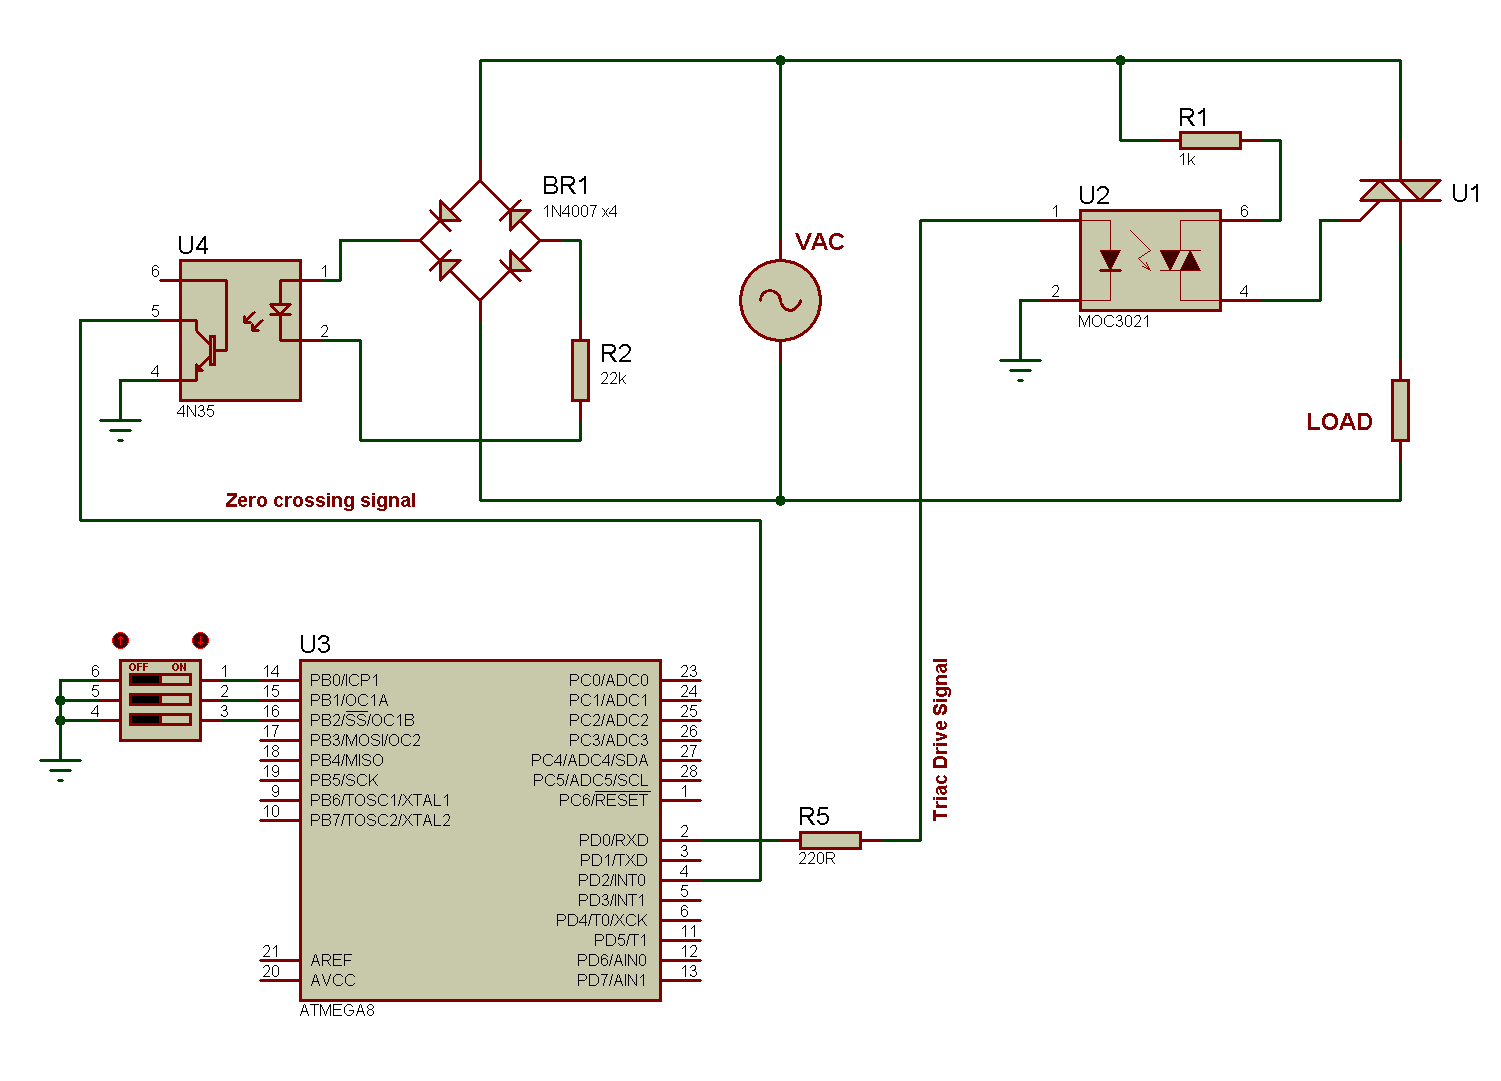 Thyristor Control Circuit Diagram Schematic Diagrams Scr Wiring Simulation Of Firing Angle For Triac Motor Speed